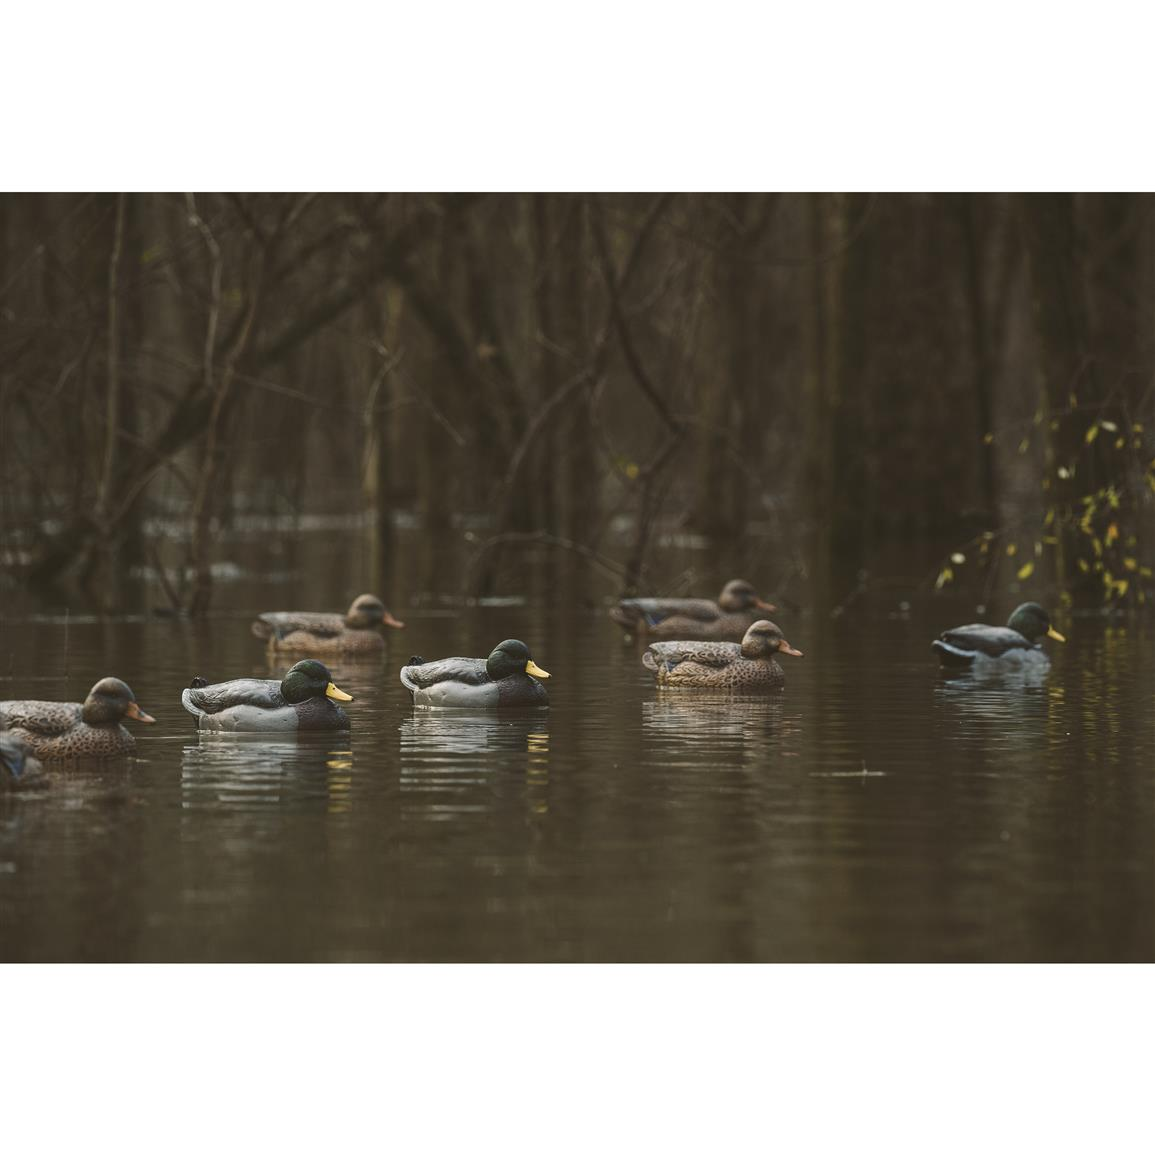 Floating decoys move in water for realism